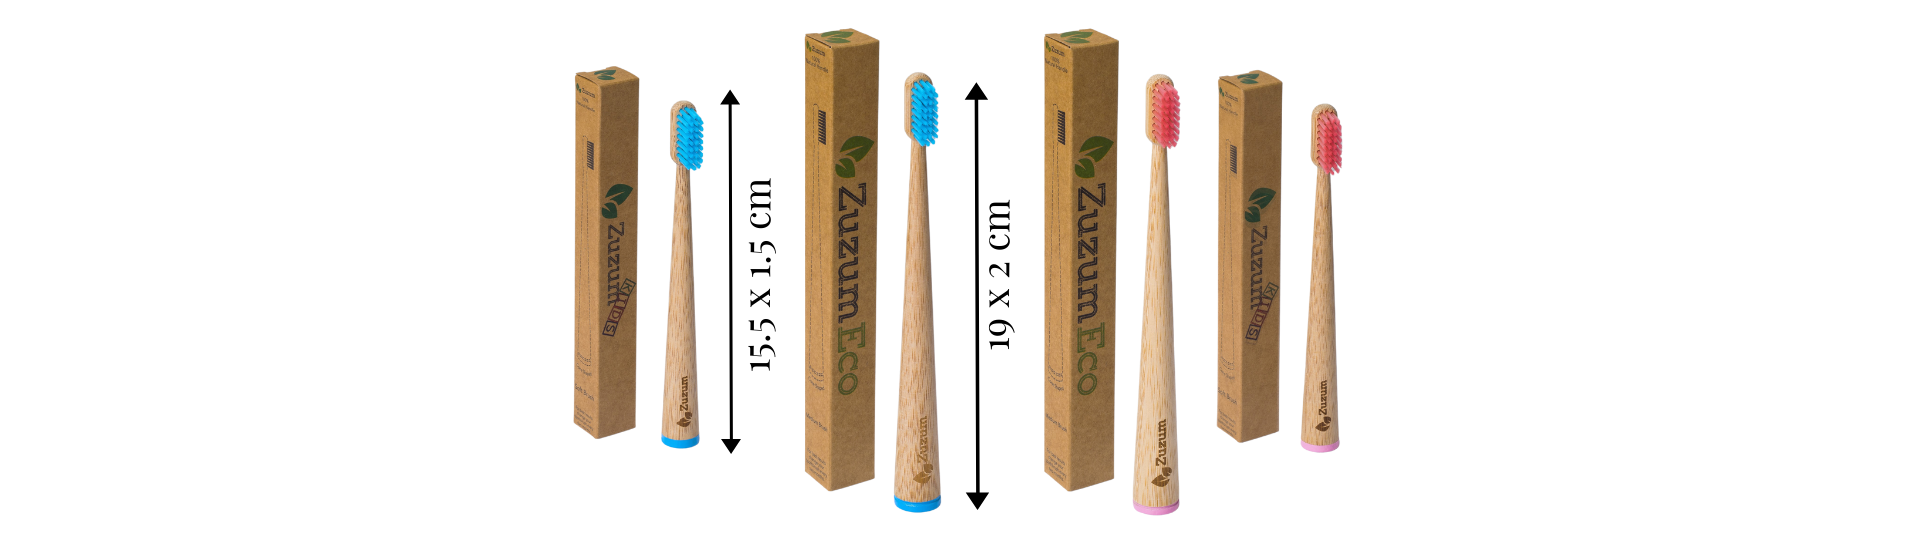 The dimensions of our family (adult + kids) self standing toothbrushes. In pink and blue.